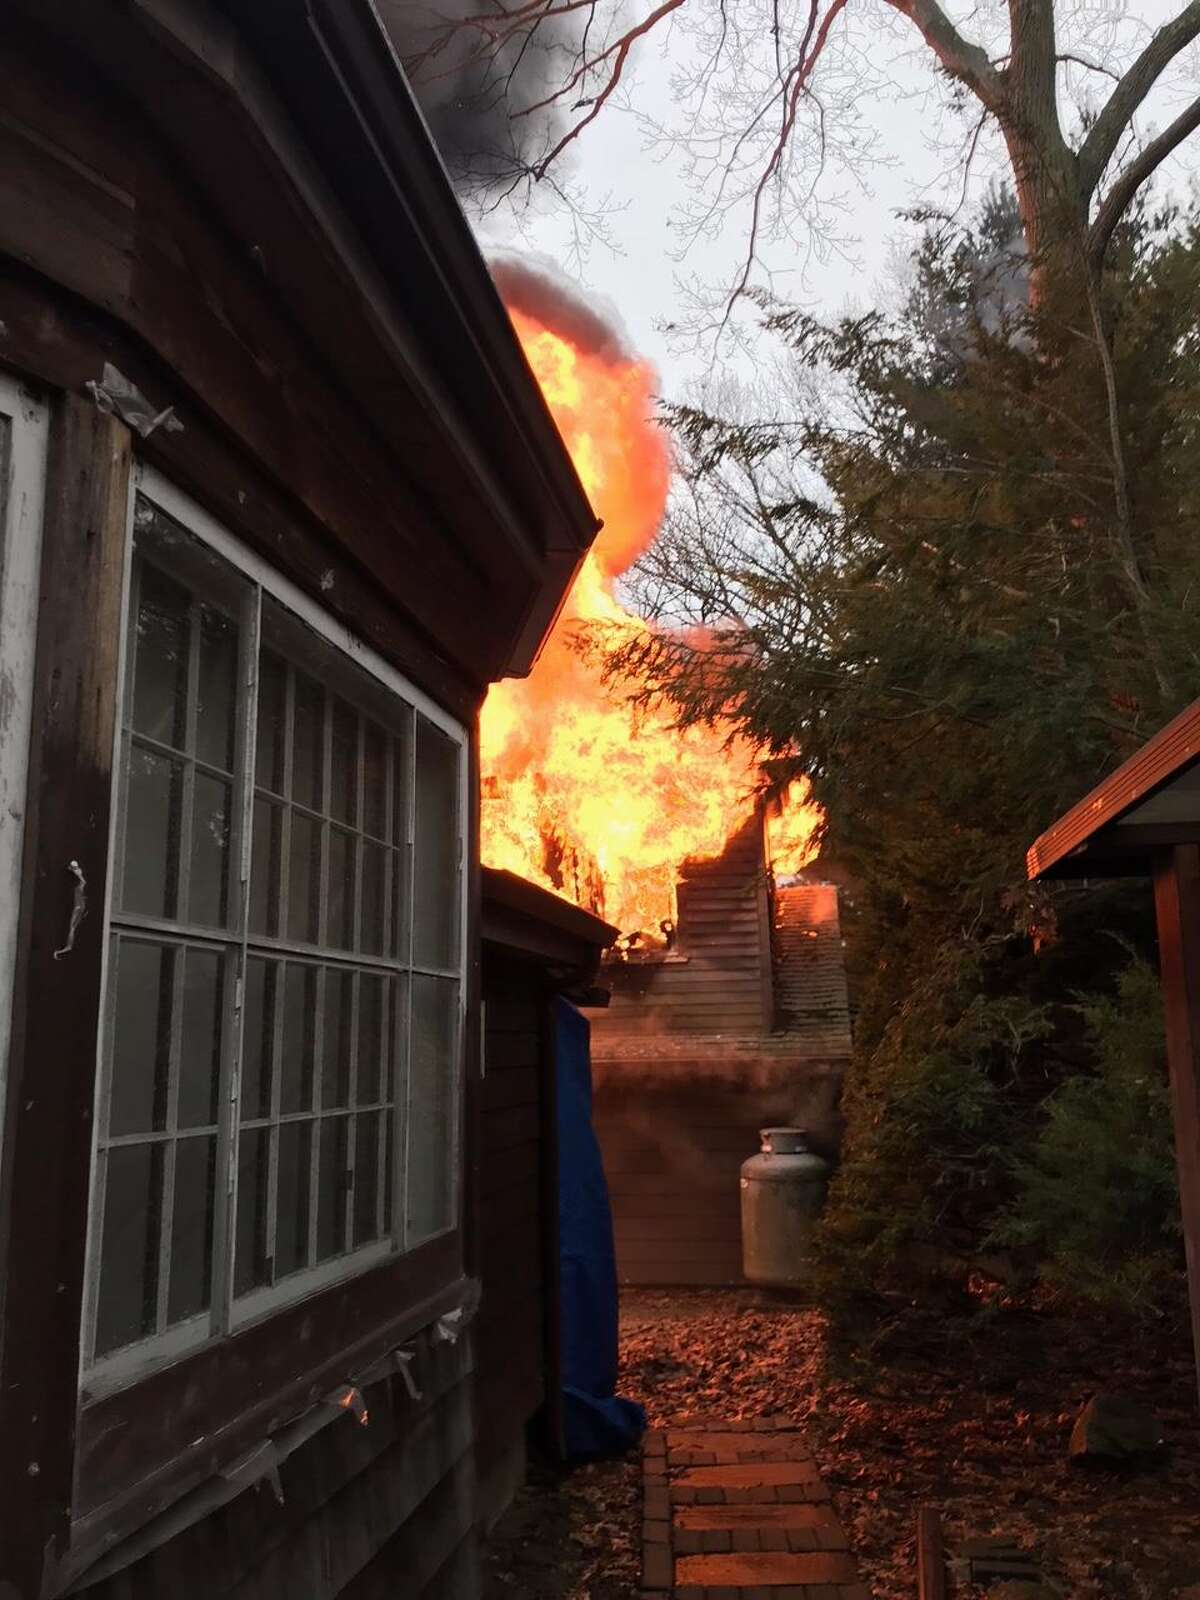 The Westport Fire Department responded to a building fire in Westporton Remlin Court Friday, February 16.